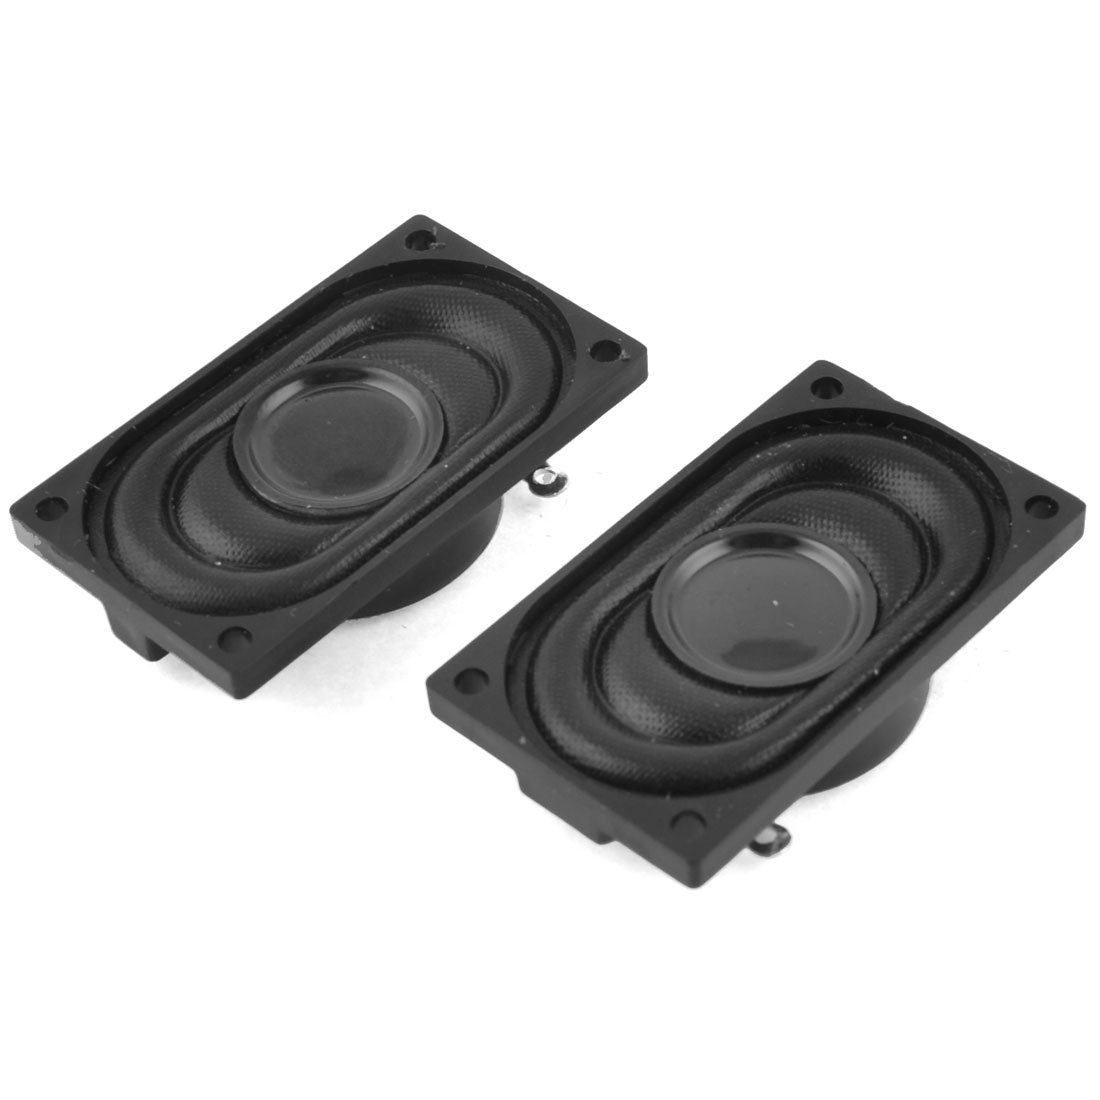 Aexit 2 PCS 2W 8 Ohm Computer Rectangle Internal Magnet Speaker 1.4'' x 0.8''